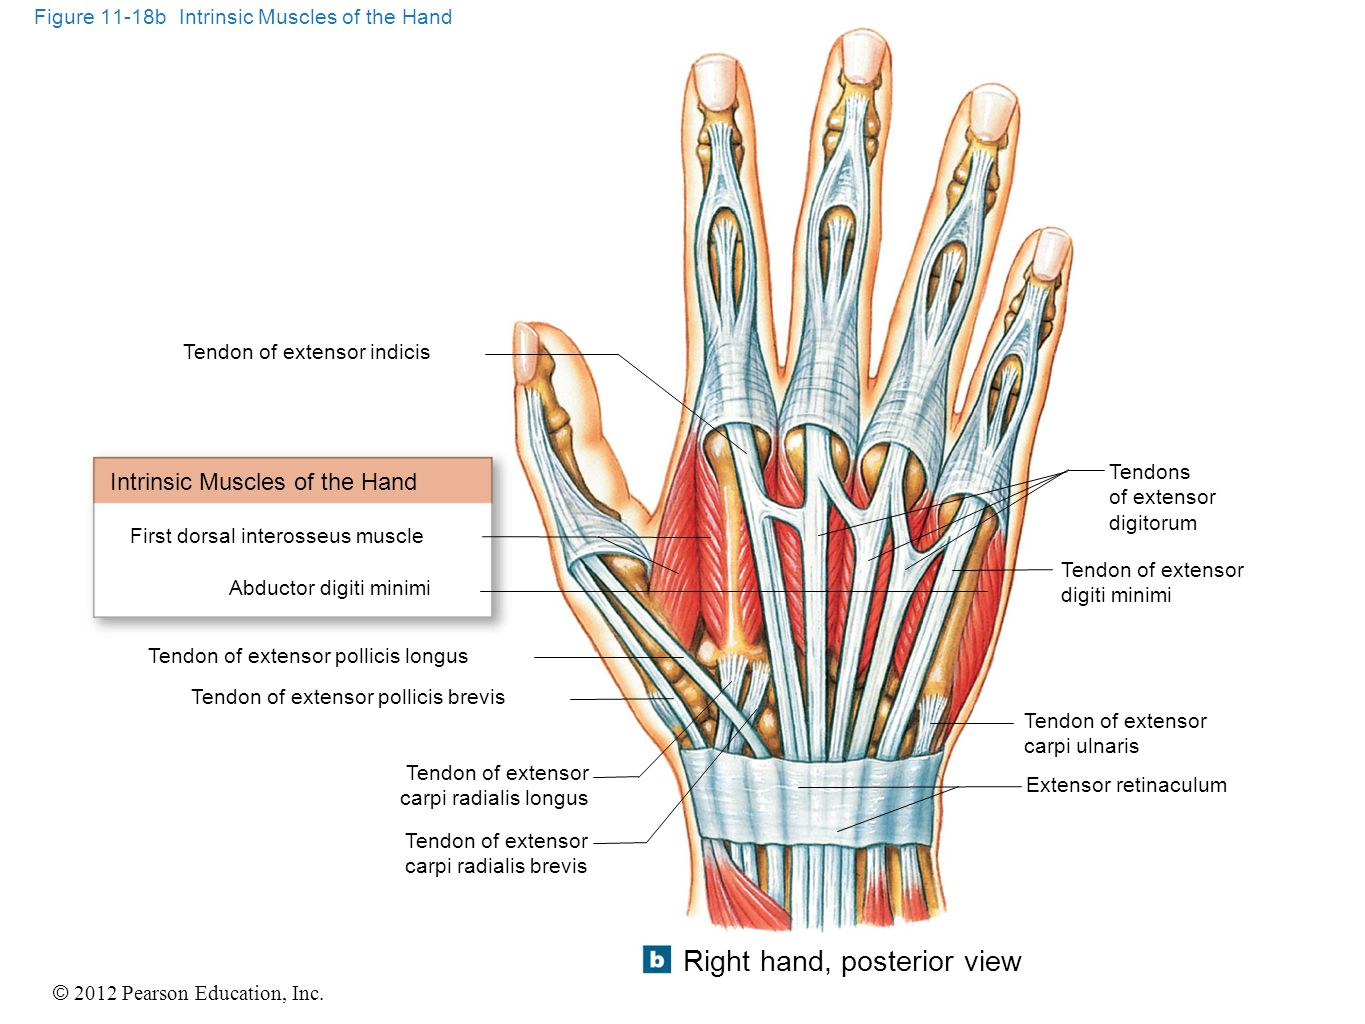 Figure 11-18b Intrinsic Muscles of the Hand